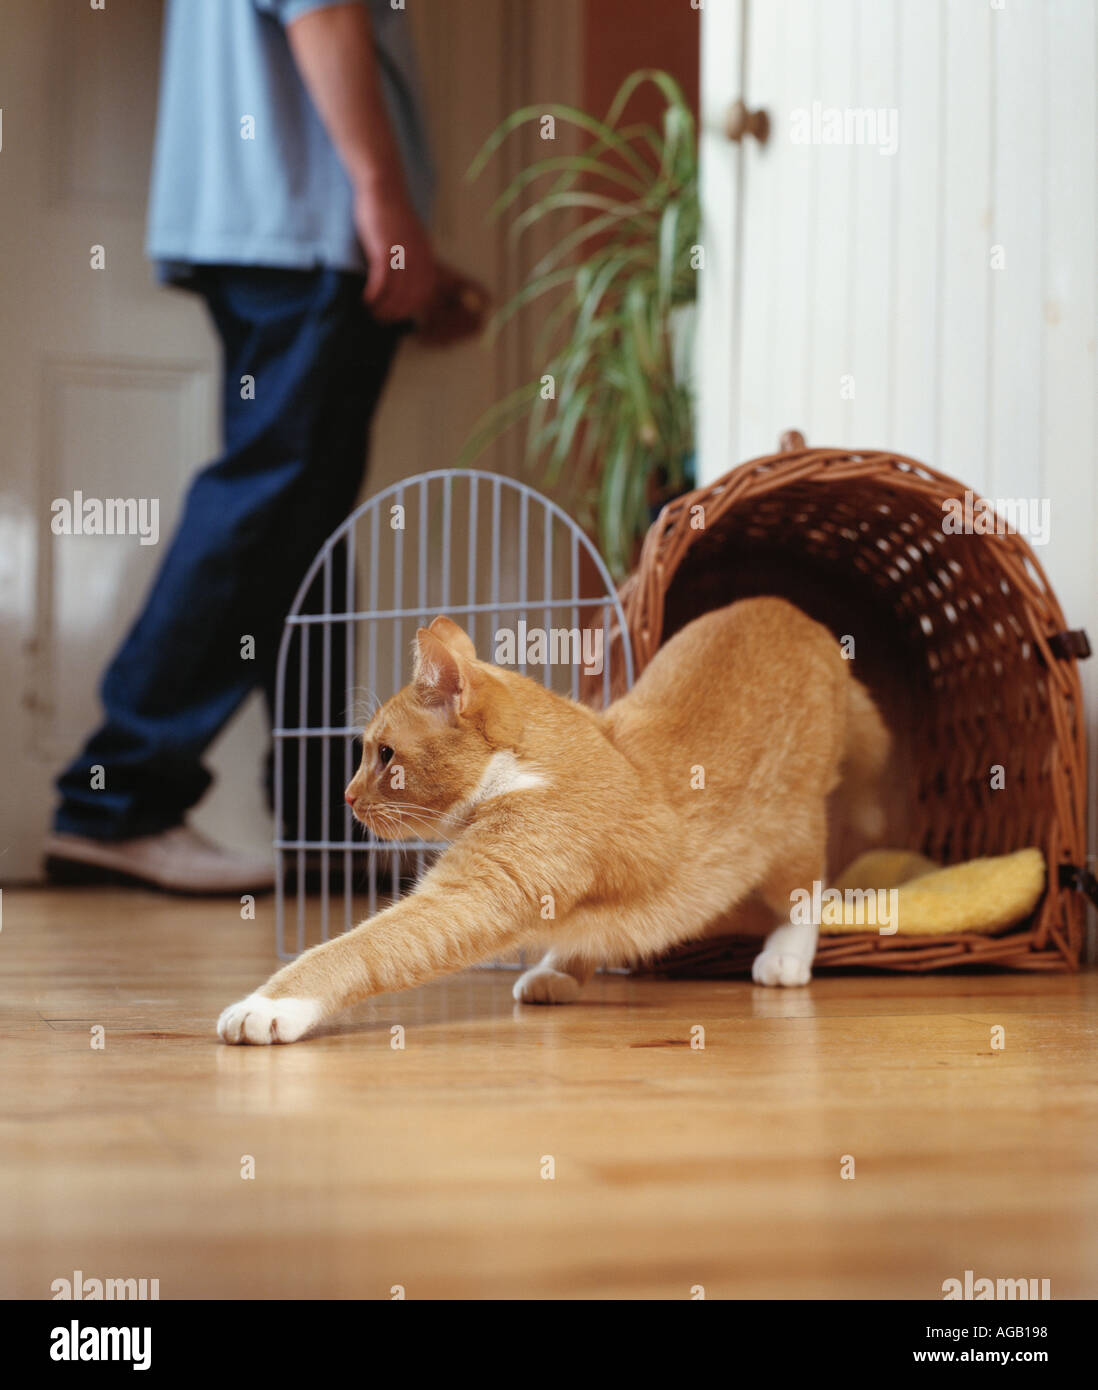 ginger tom escaping from basket - Stock Image